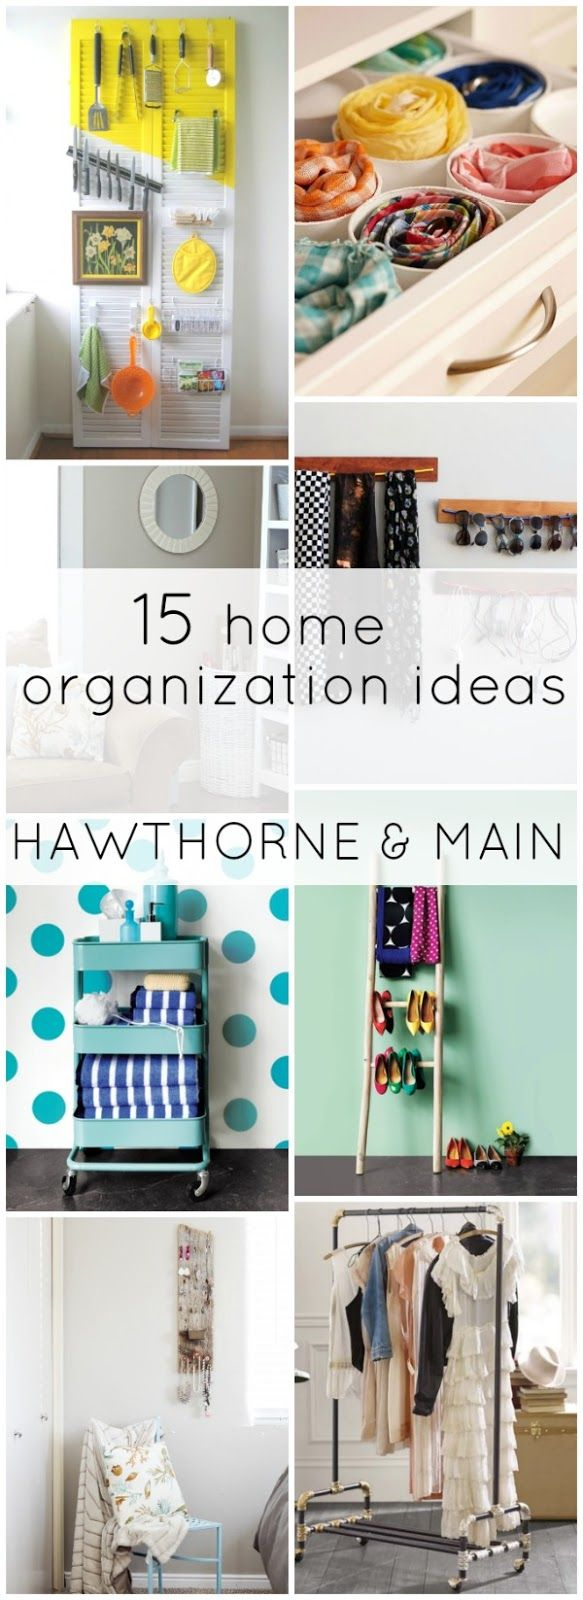 15 Home Organization Ideas that are sure to get you inspired to be more organized!! Love these ideas!!